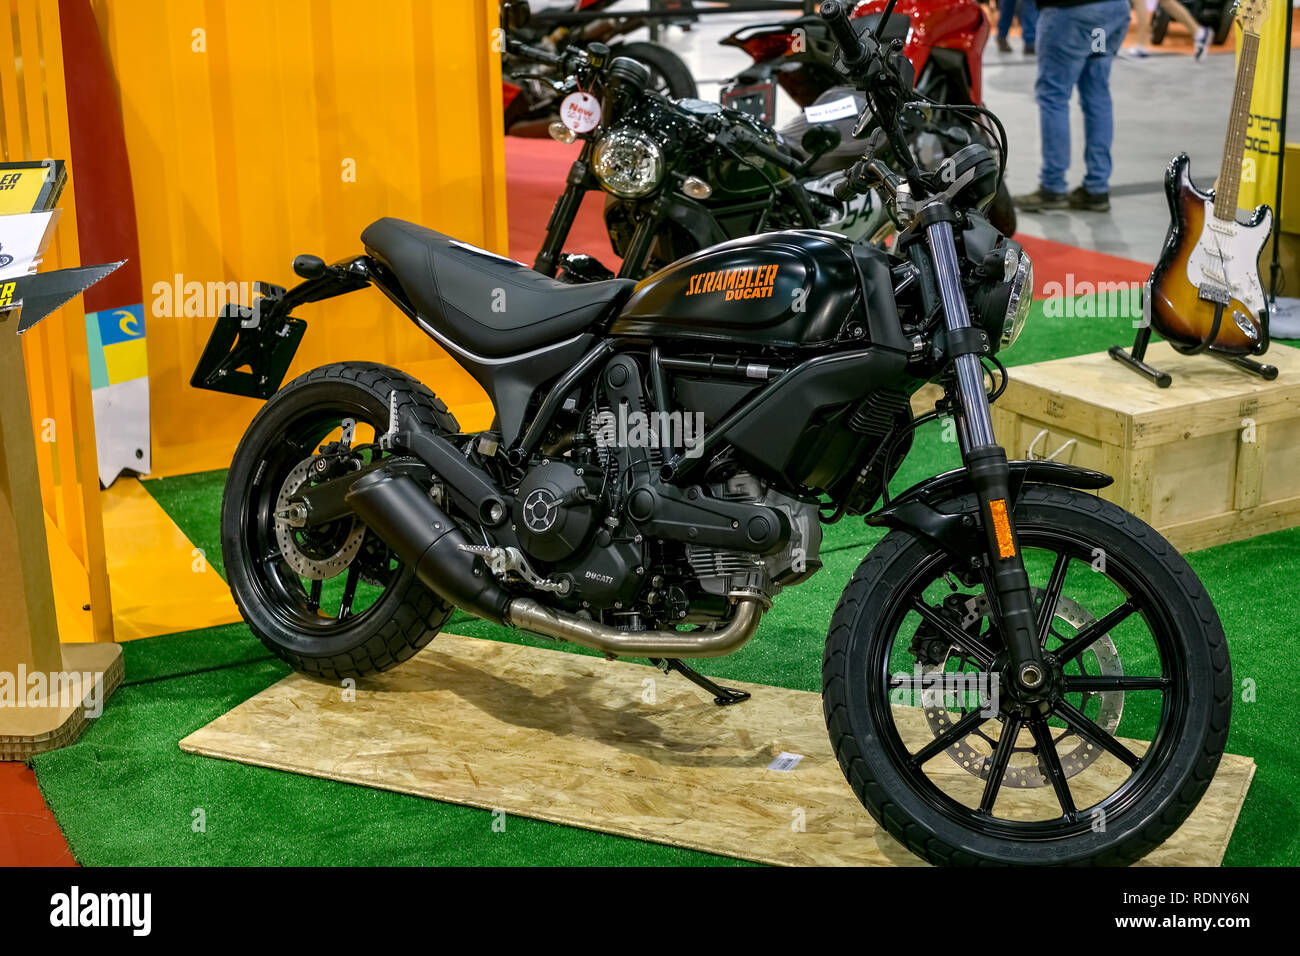 Malaga, Spain - May 20, 2018. The Ducati Scrambler is a L-twin engined standard or roadster motorcycle made by Ducati presented at Salon Moto & Bike A - Stock Image